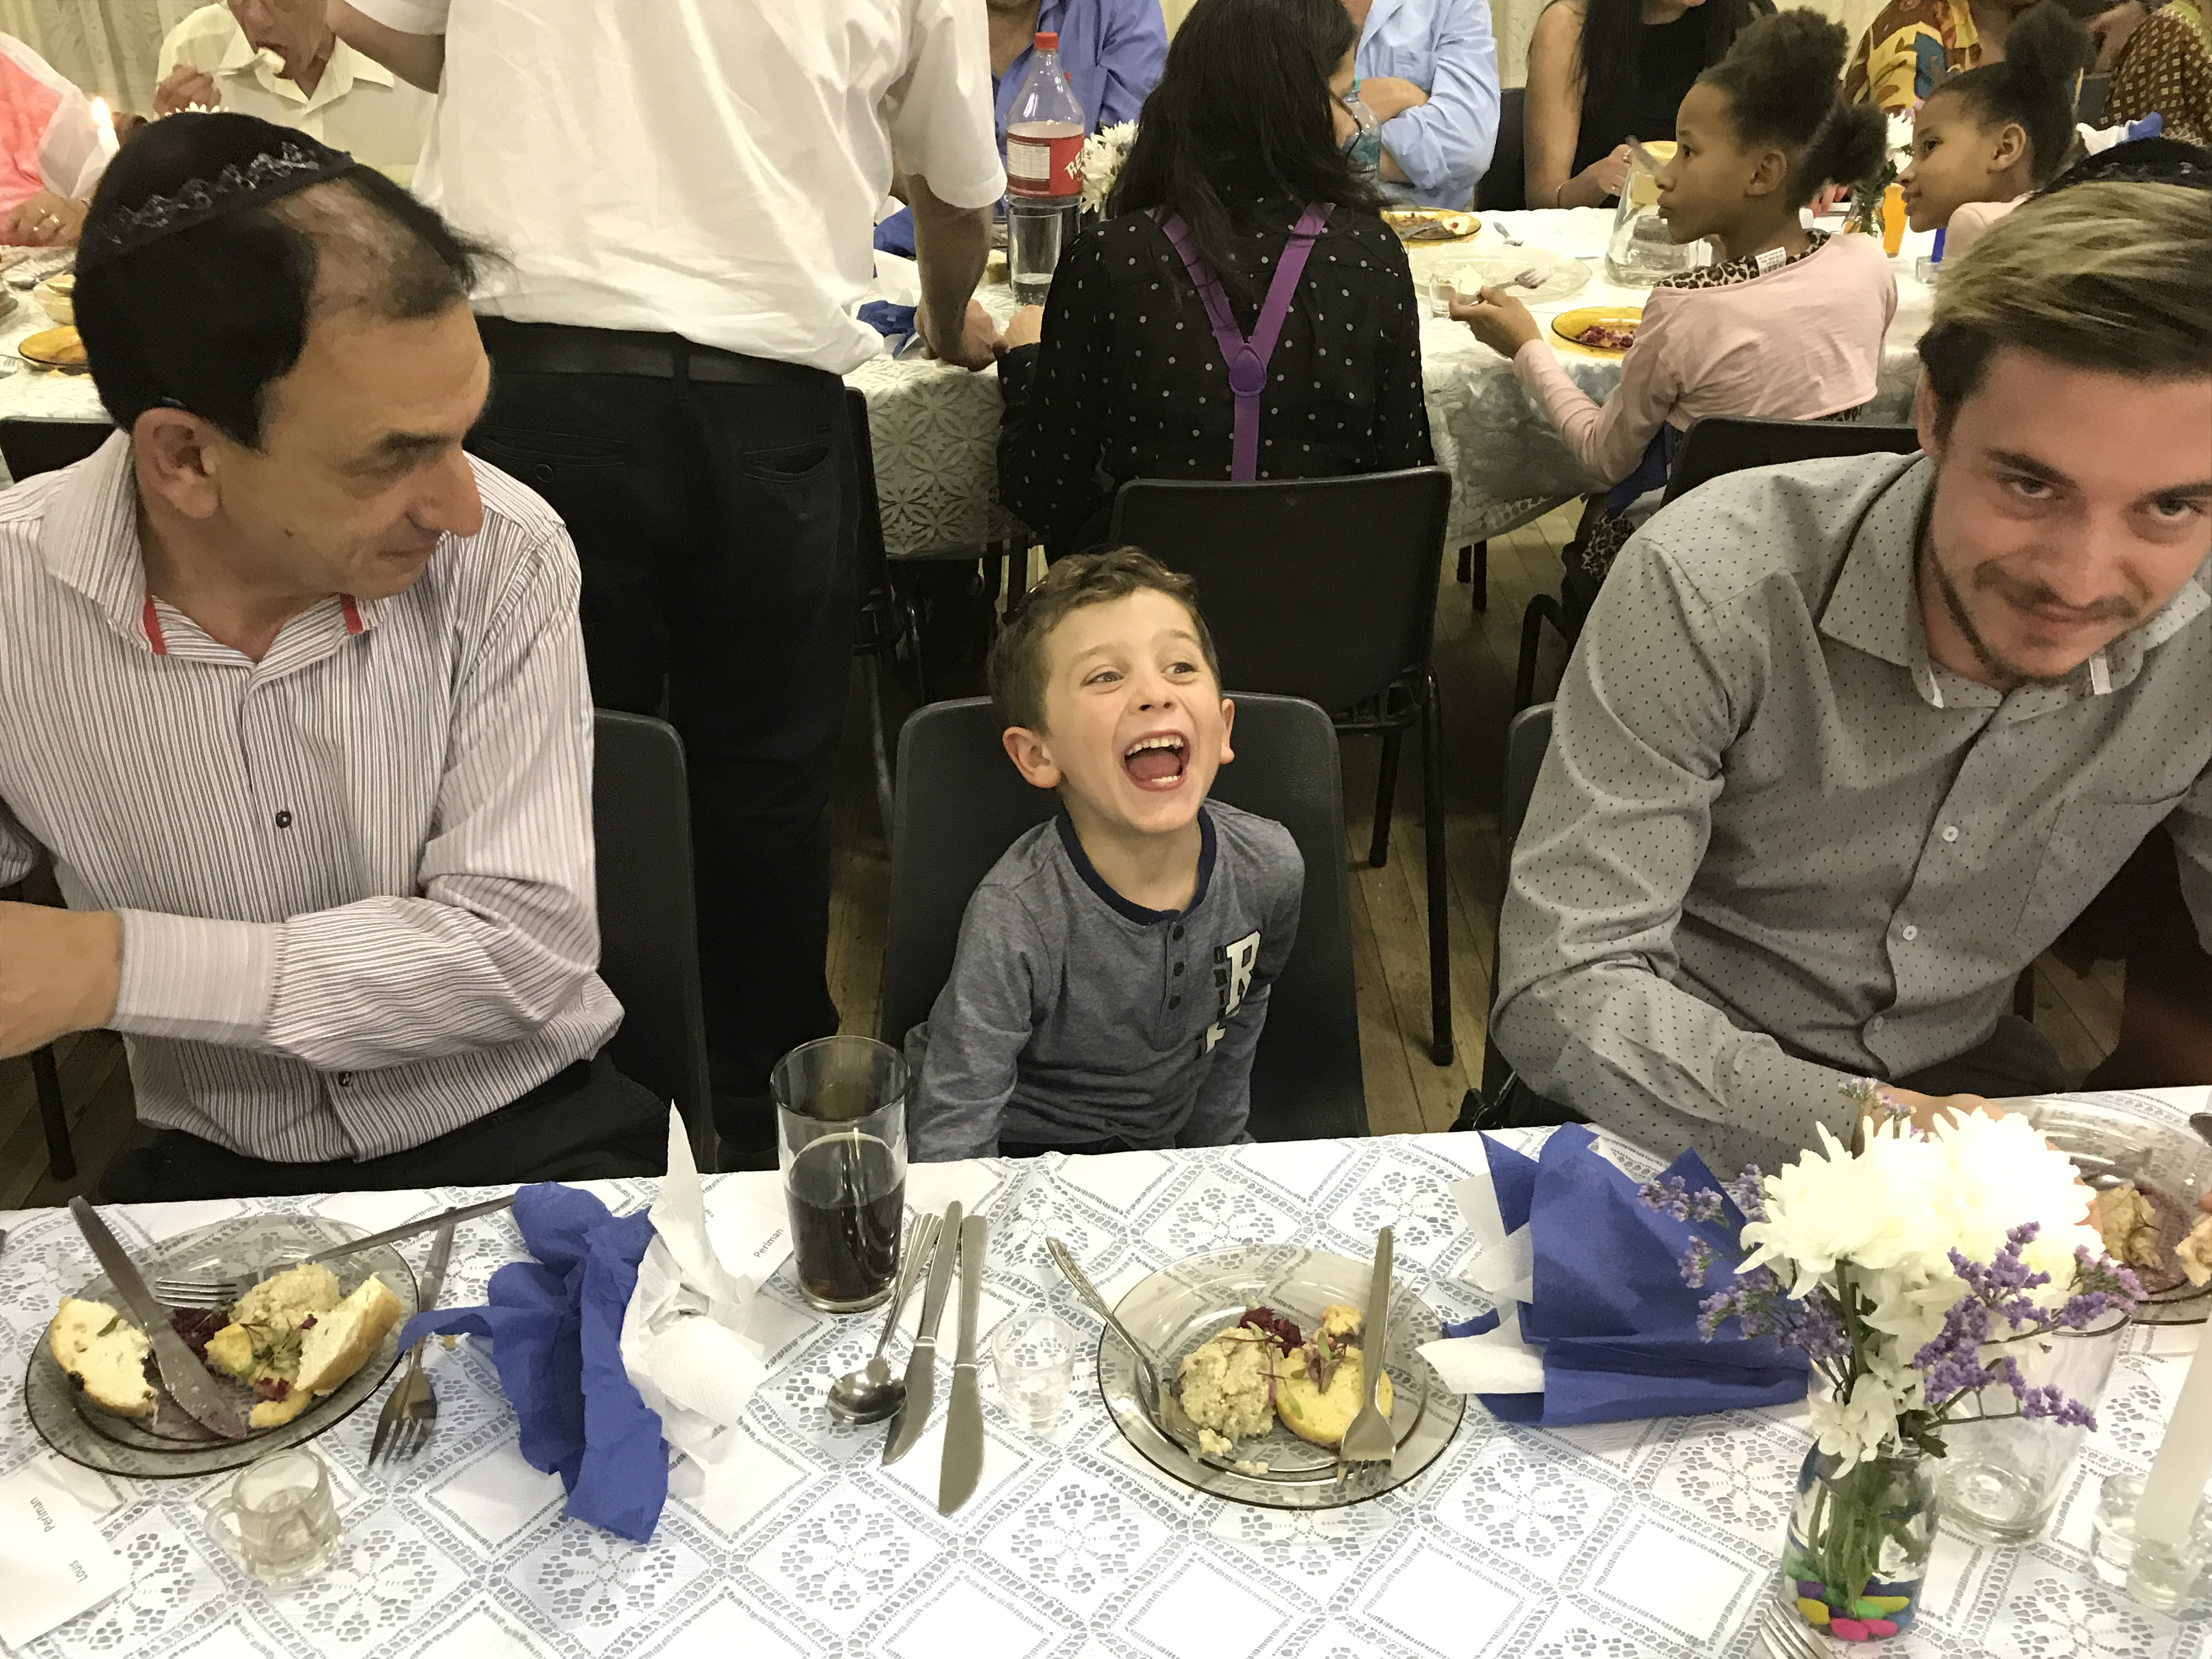 Louis and Gabriel perlman with Eitan